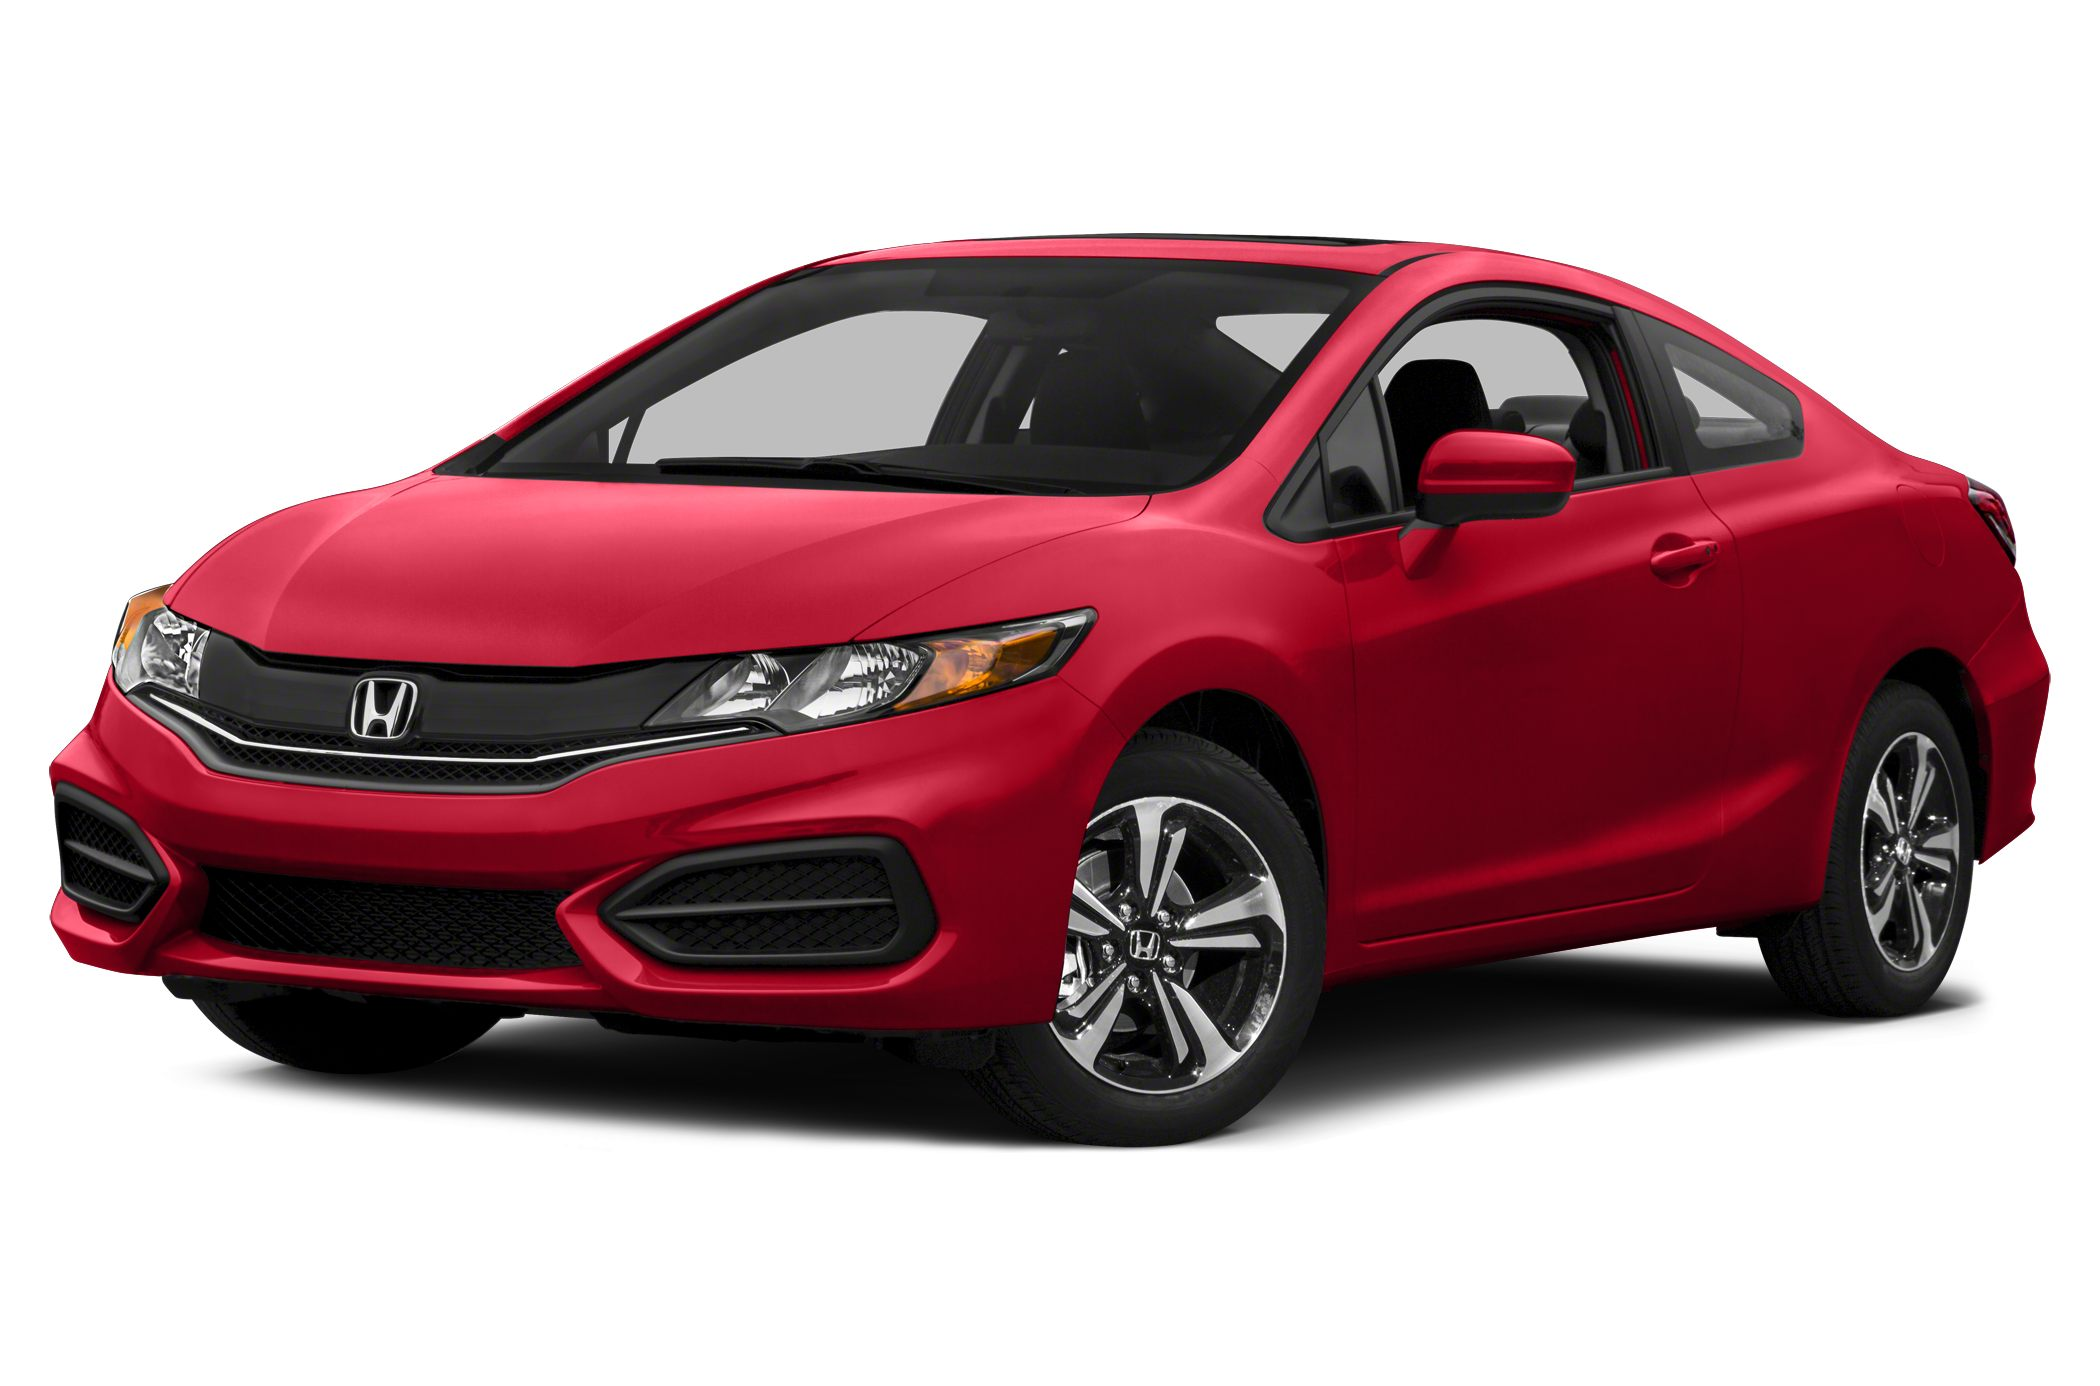 2015 Honda Civic LX Sedan for sale in Virginia Beach for $18,854 with 6 miles.